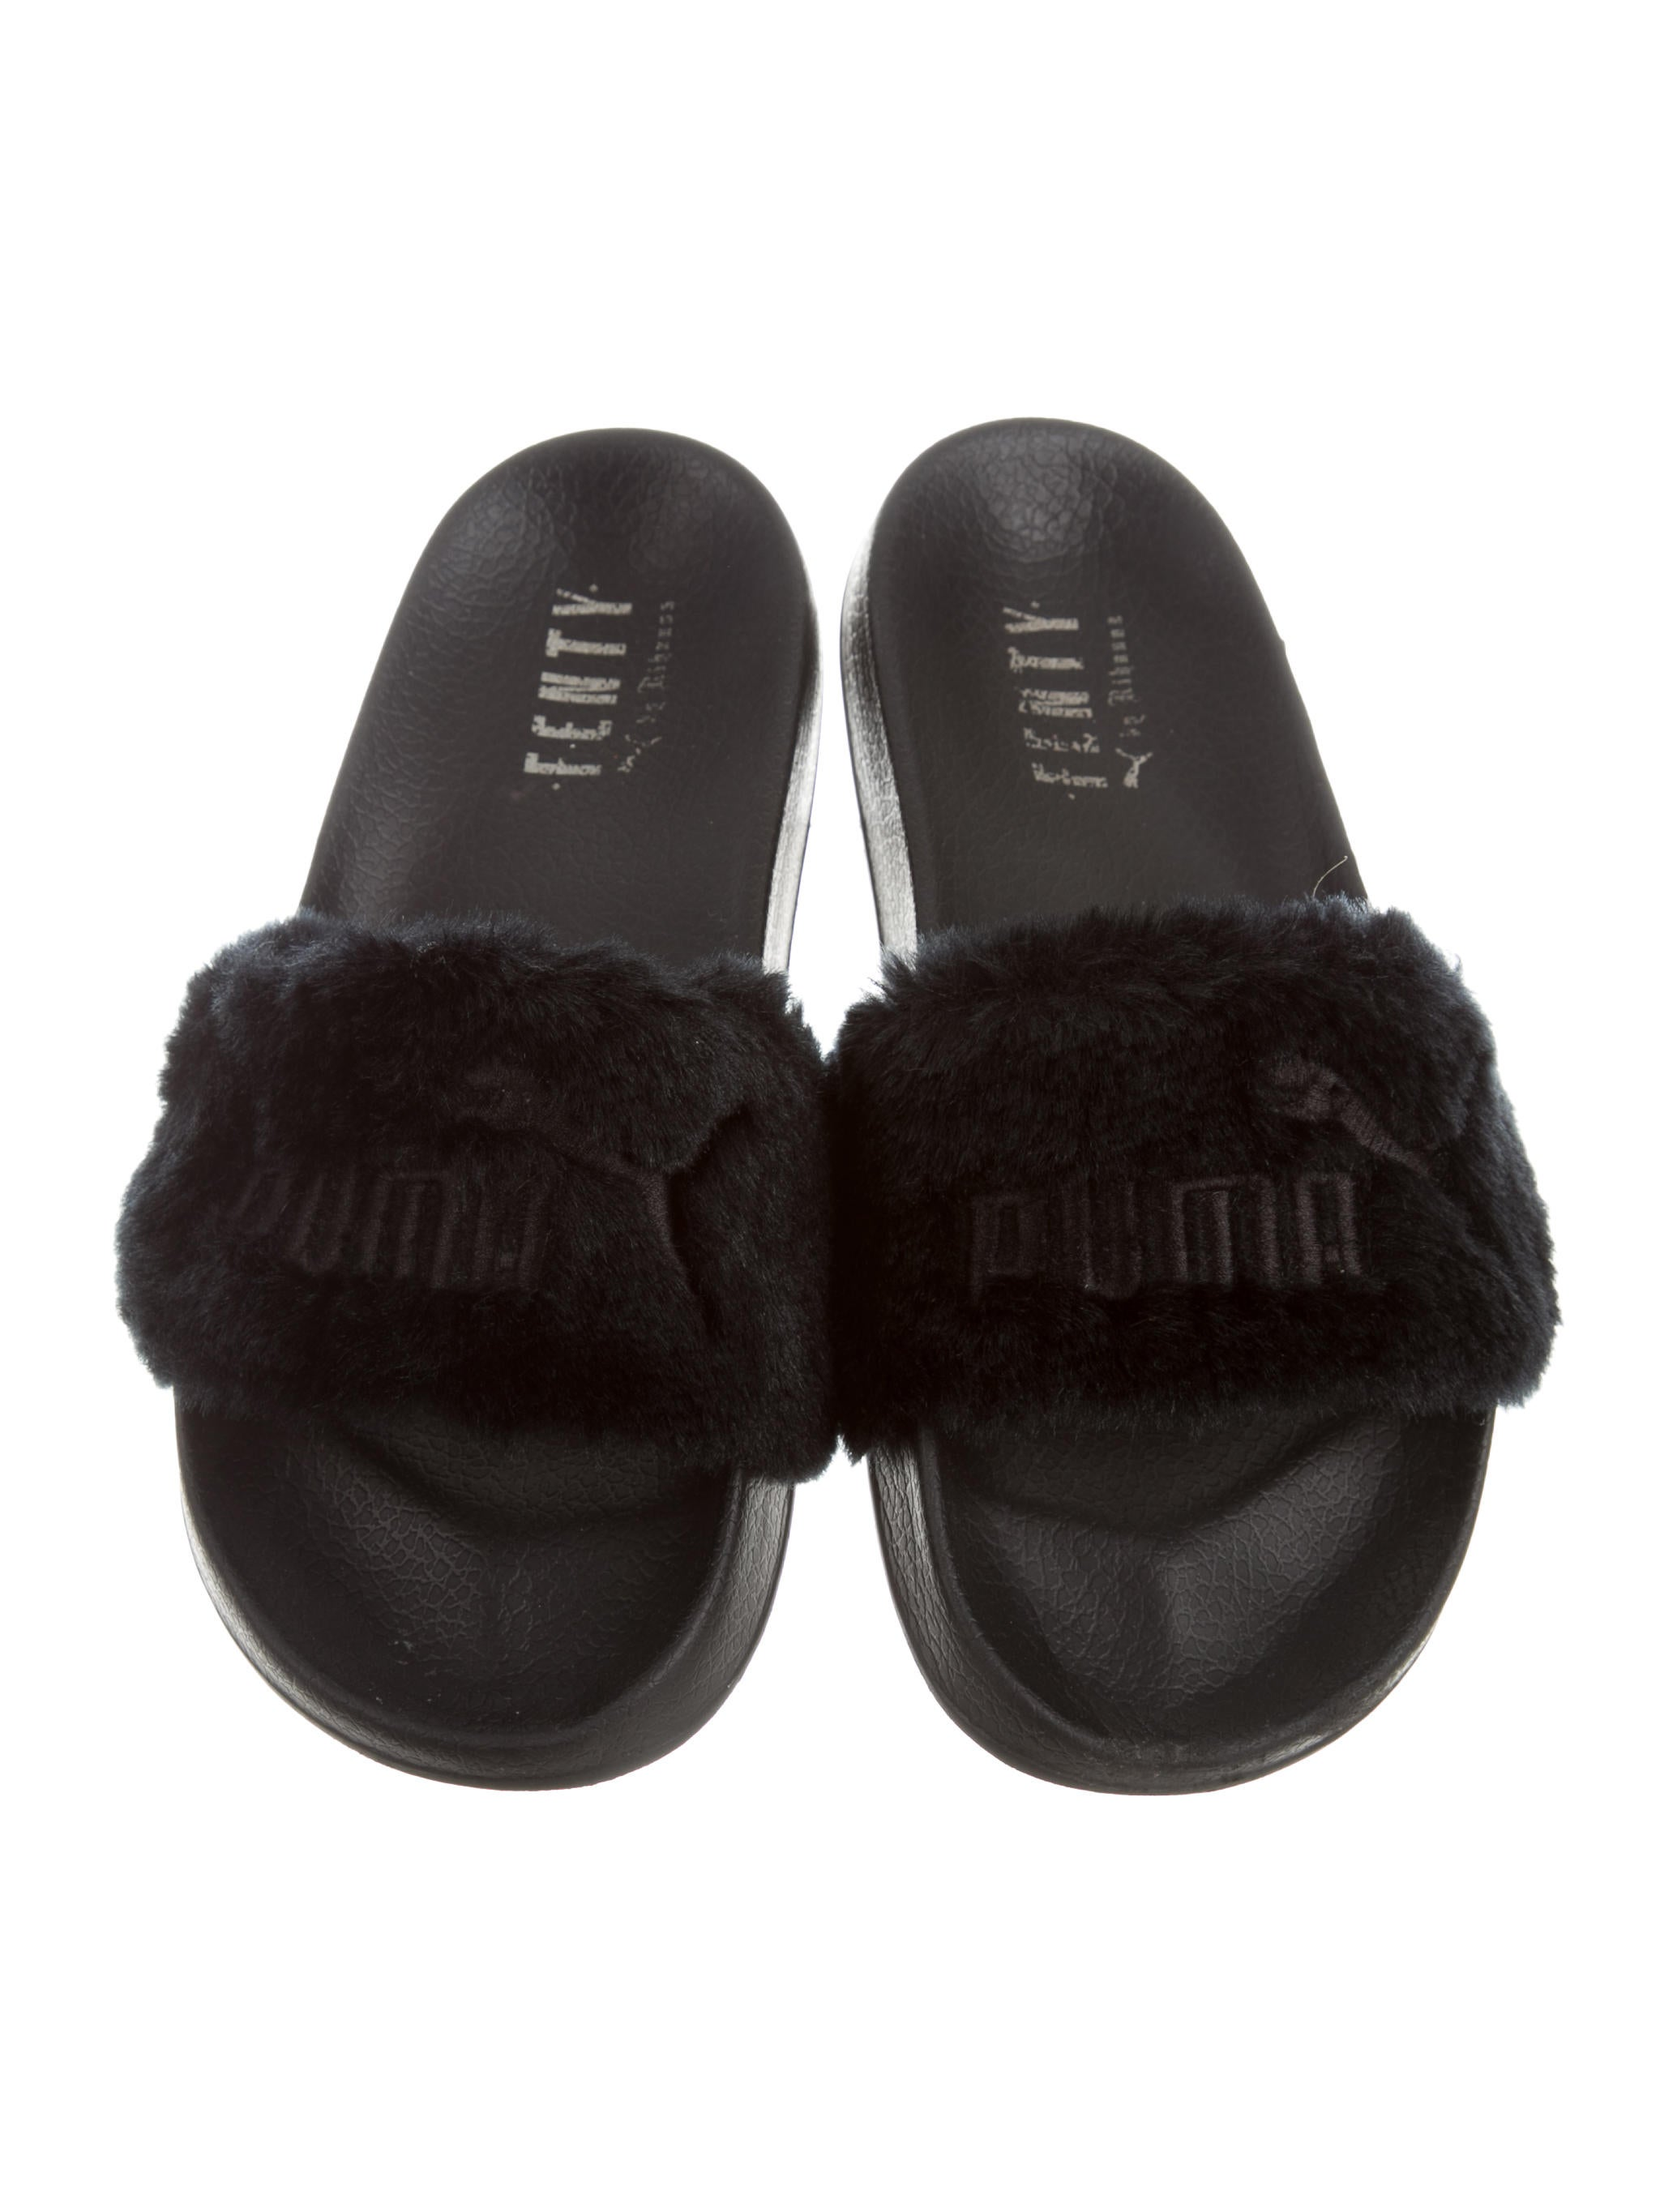 puma x fenty leadcat faux fur sandals shoes wpmfy20153. Black Bedroom Furniture Sets. Home Design Ideas